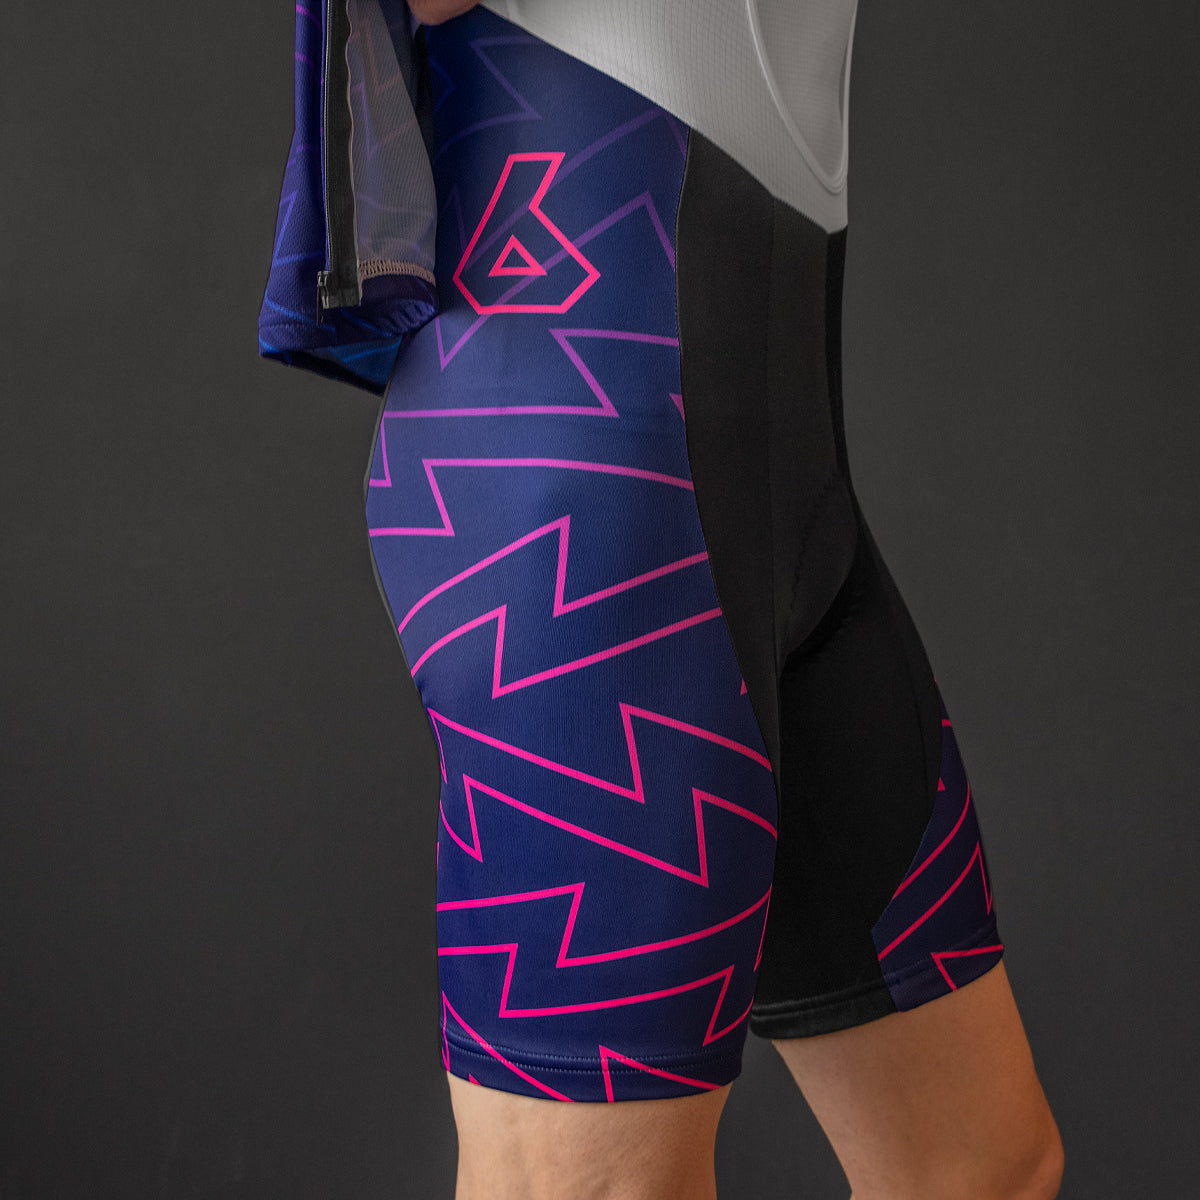 Supercharger Bib Shorts (PURPLE)